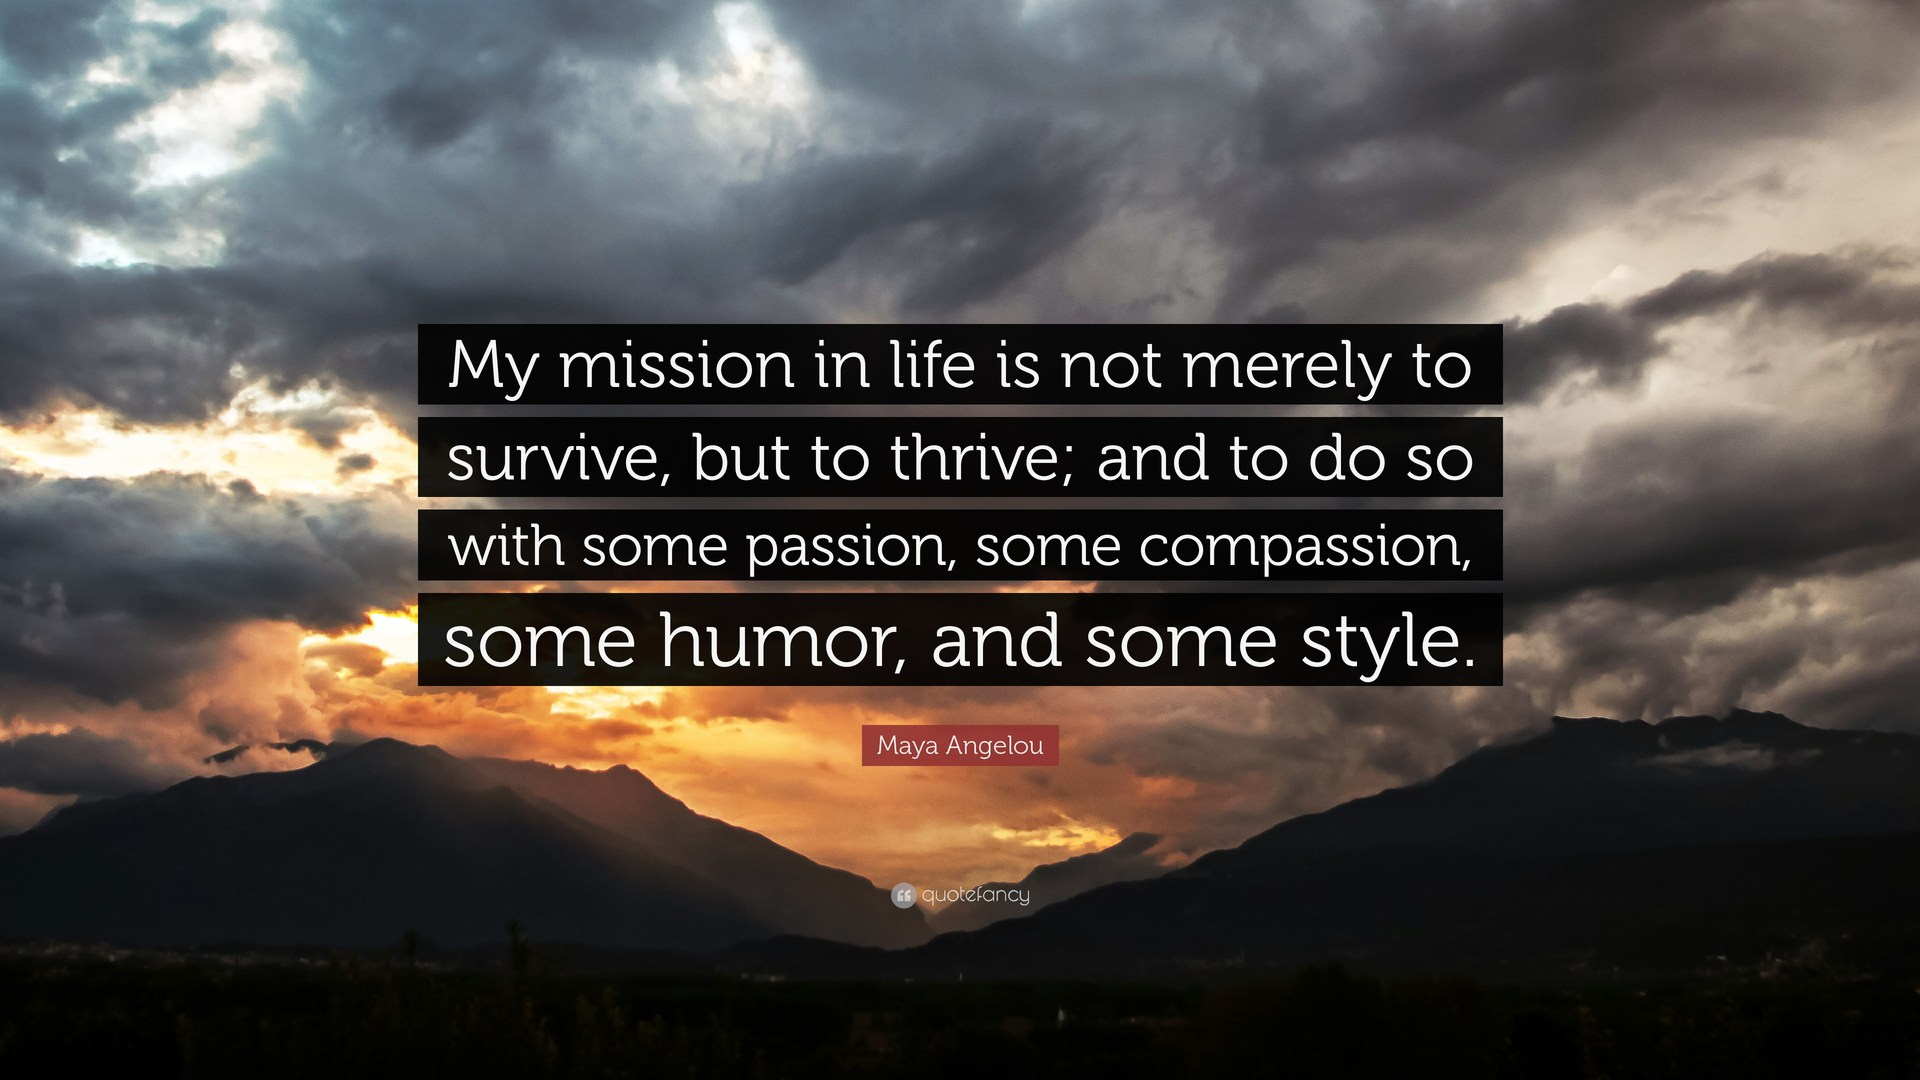 'My mission in life is not merely to survive, but to thrive; and to do so with some passion, some compassion, some humor, and some style.' -Maya Angelou